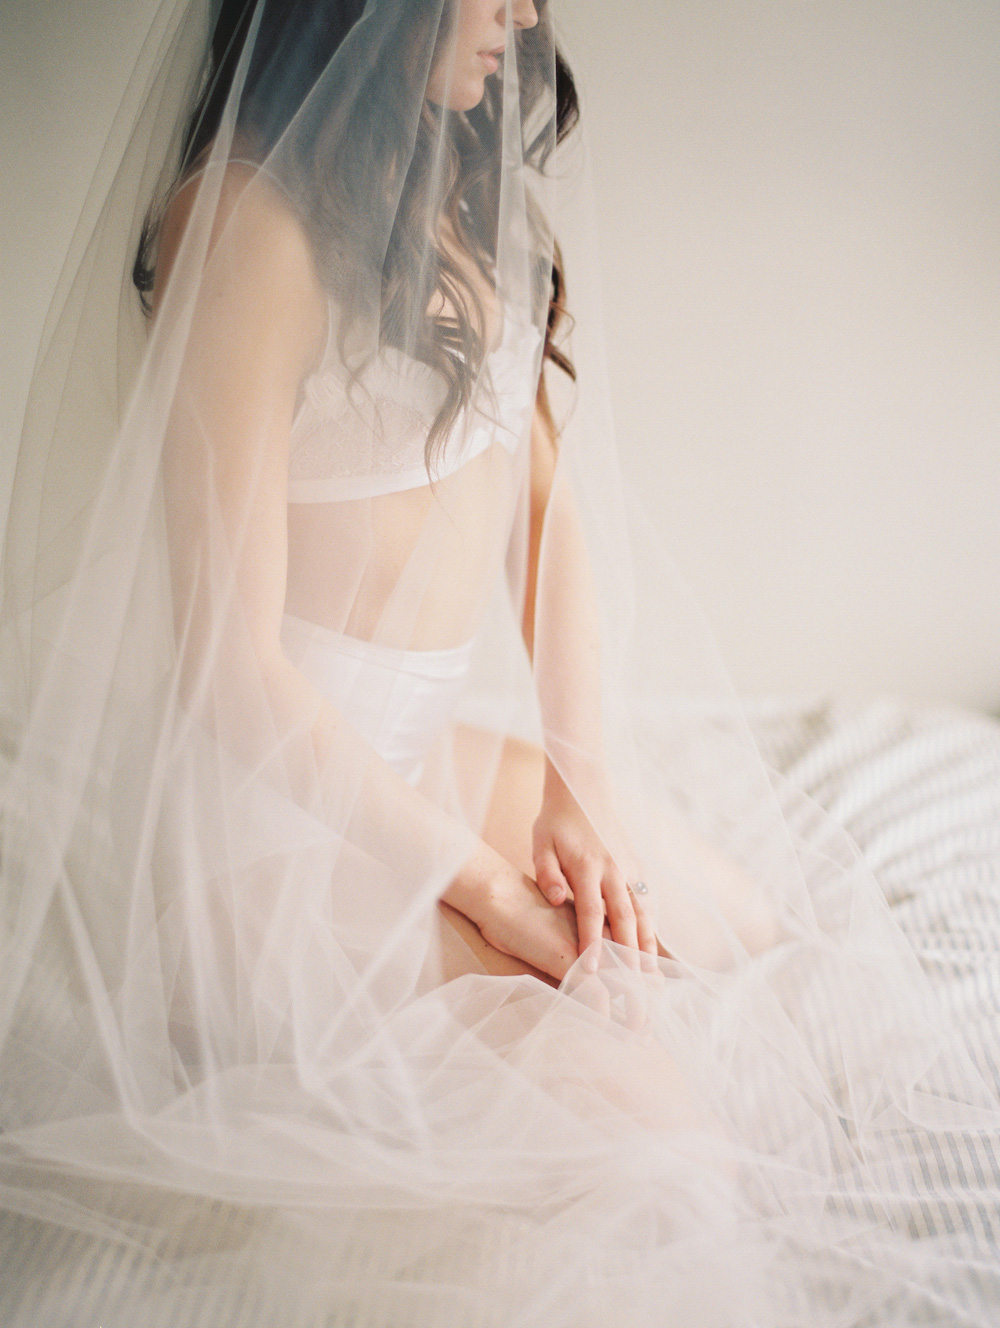 Bridal Boudoir ensemble by Veronica Sheaffer